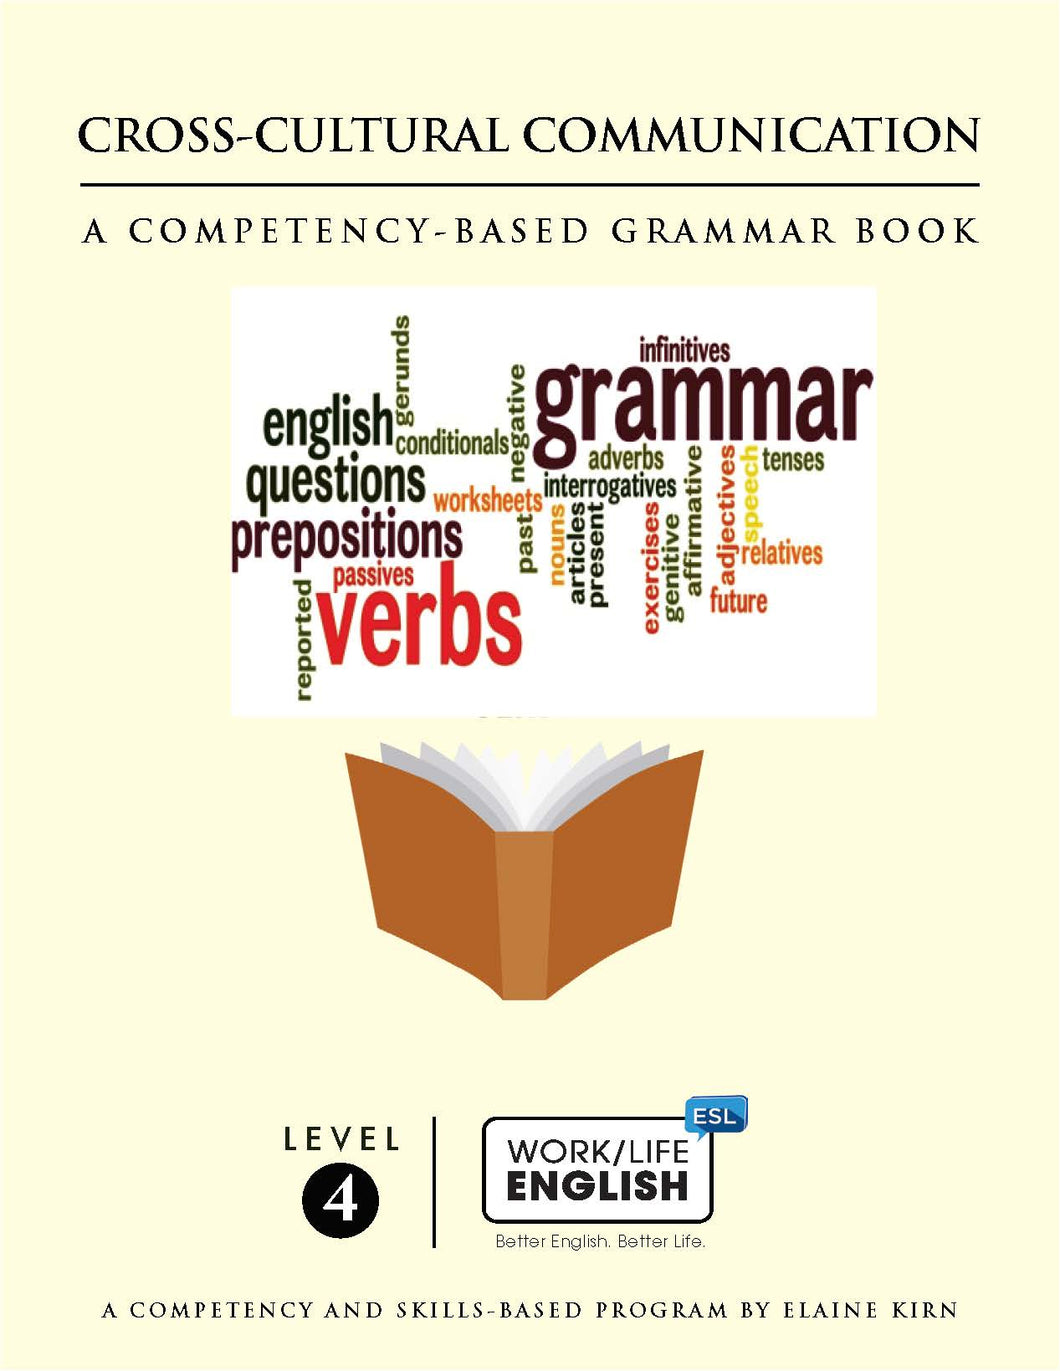 Grammar Text<br/>Work/Life English Level 4 (of 6) Student; 180-pages